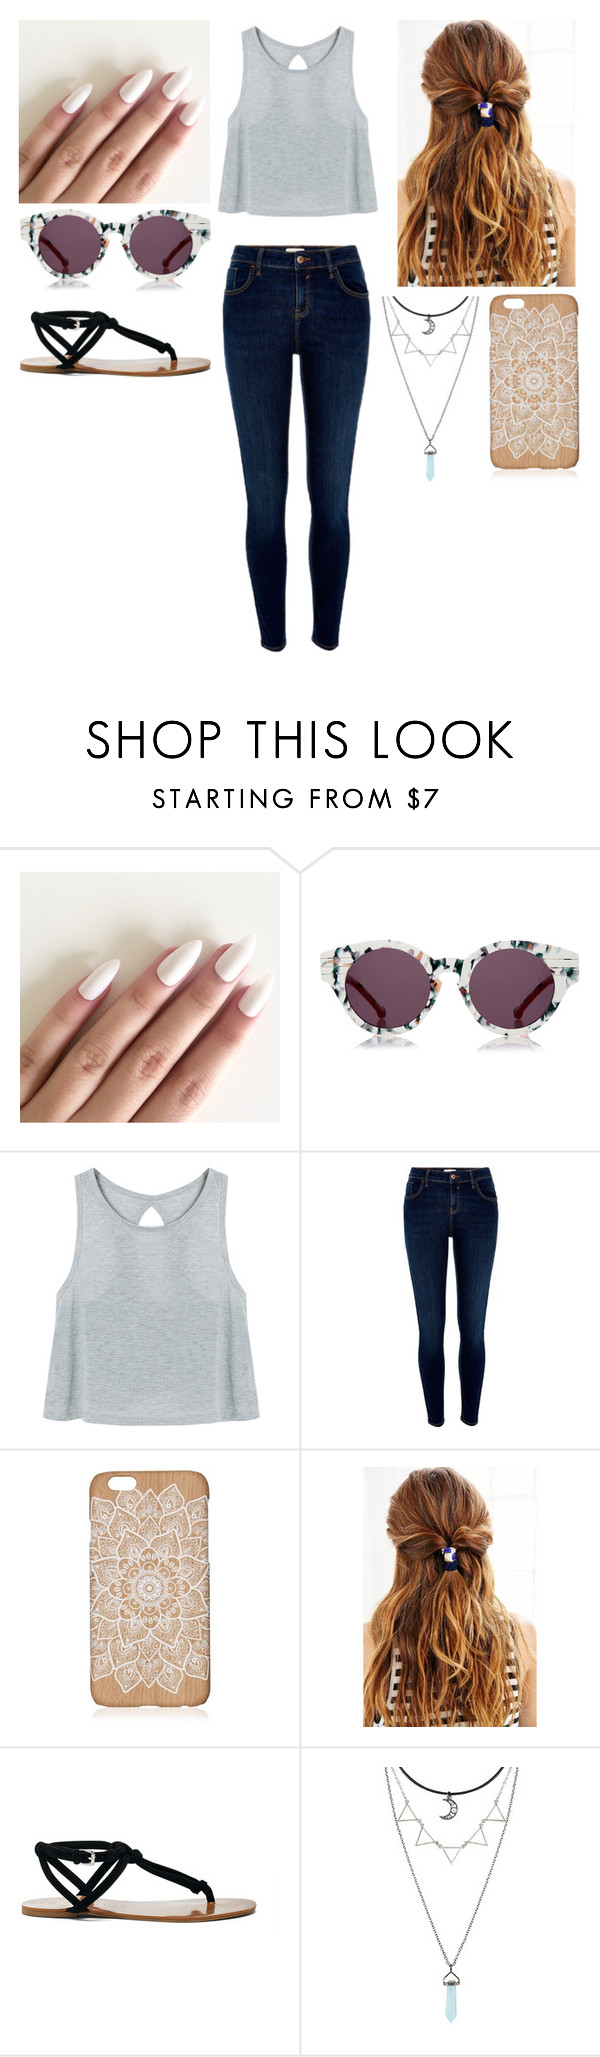 """""""Untitled #280"""" by xjessxforevax ❤ liked on Polyvore featuring Preen, River Island, Urban Outfitters and Sole Society"""